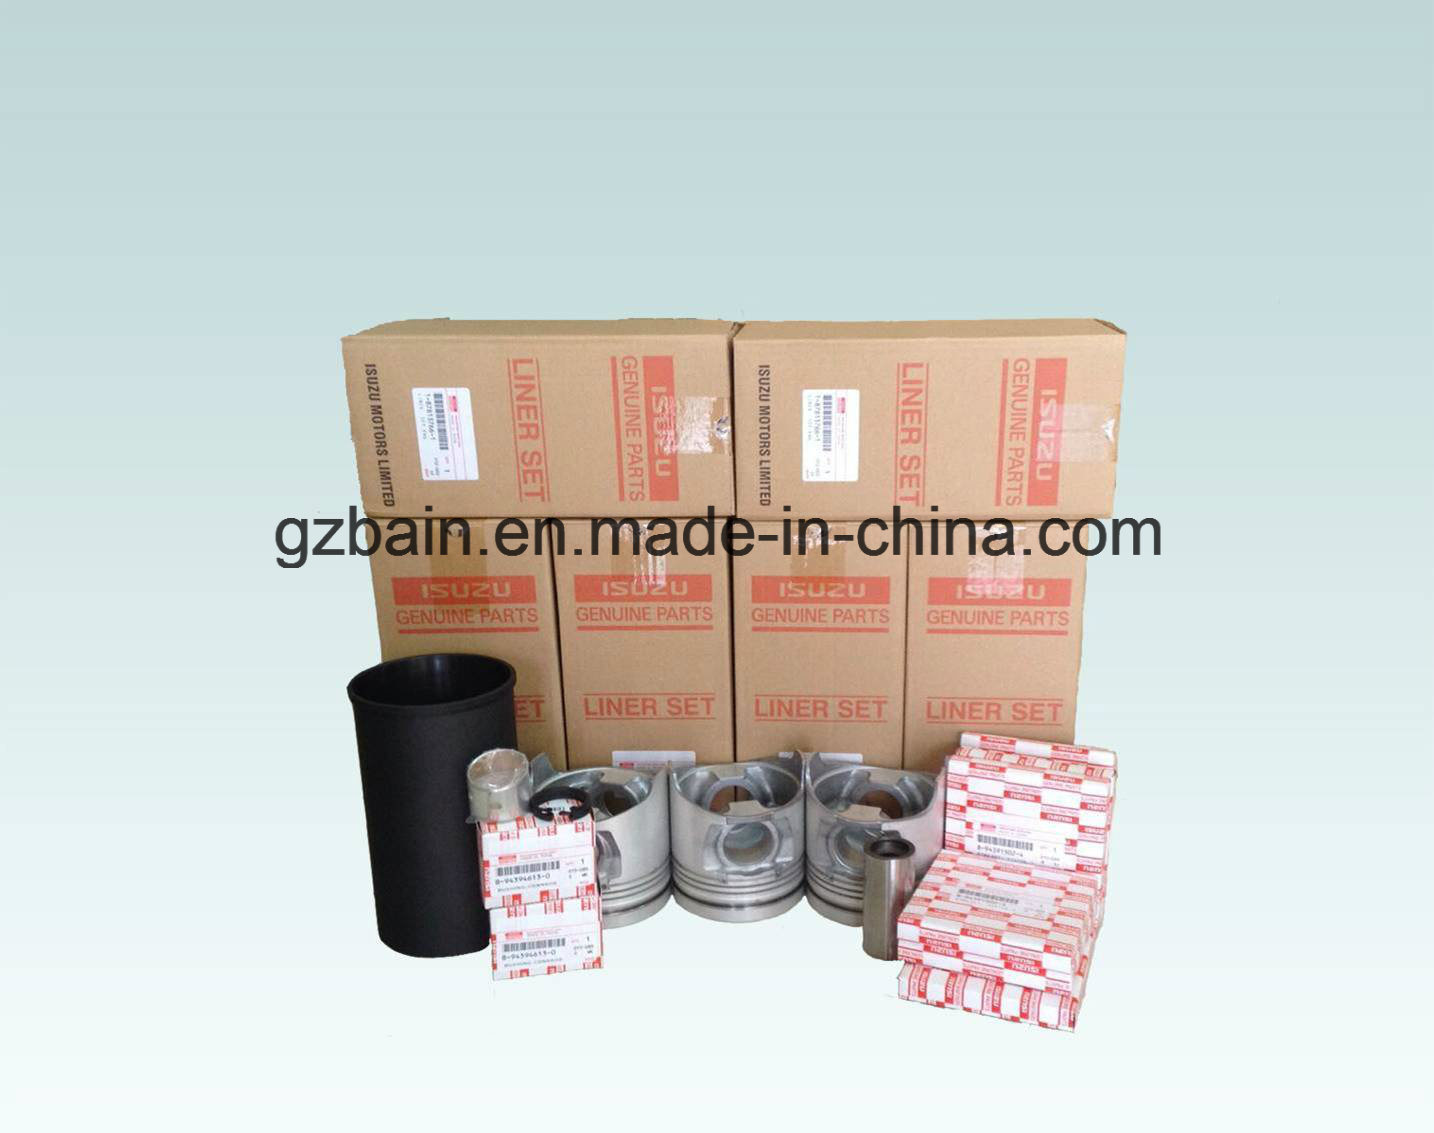 4HK1/6HK1 Liner Kit /Set for Isuzu Excavator Engine Part Manufature